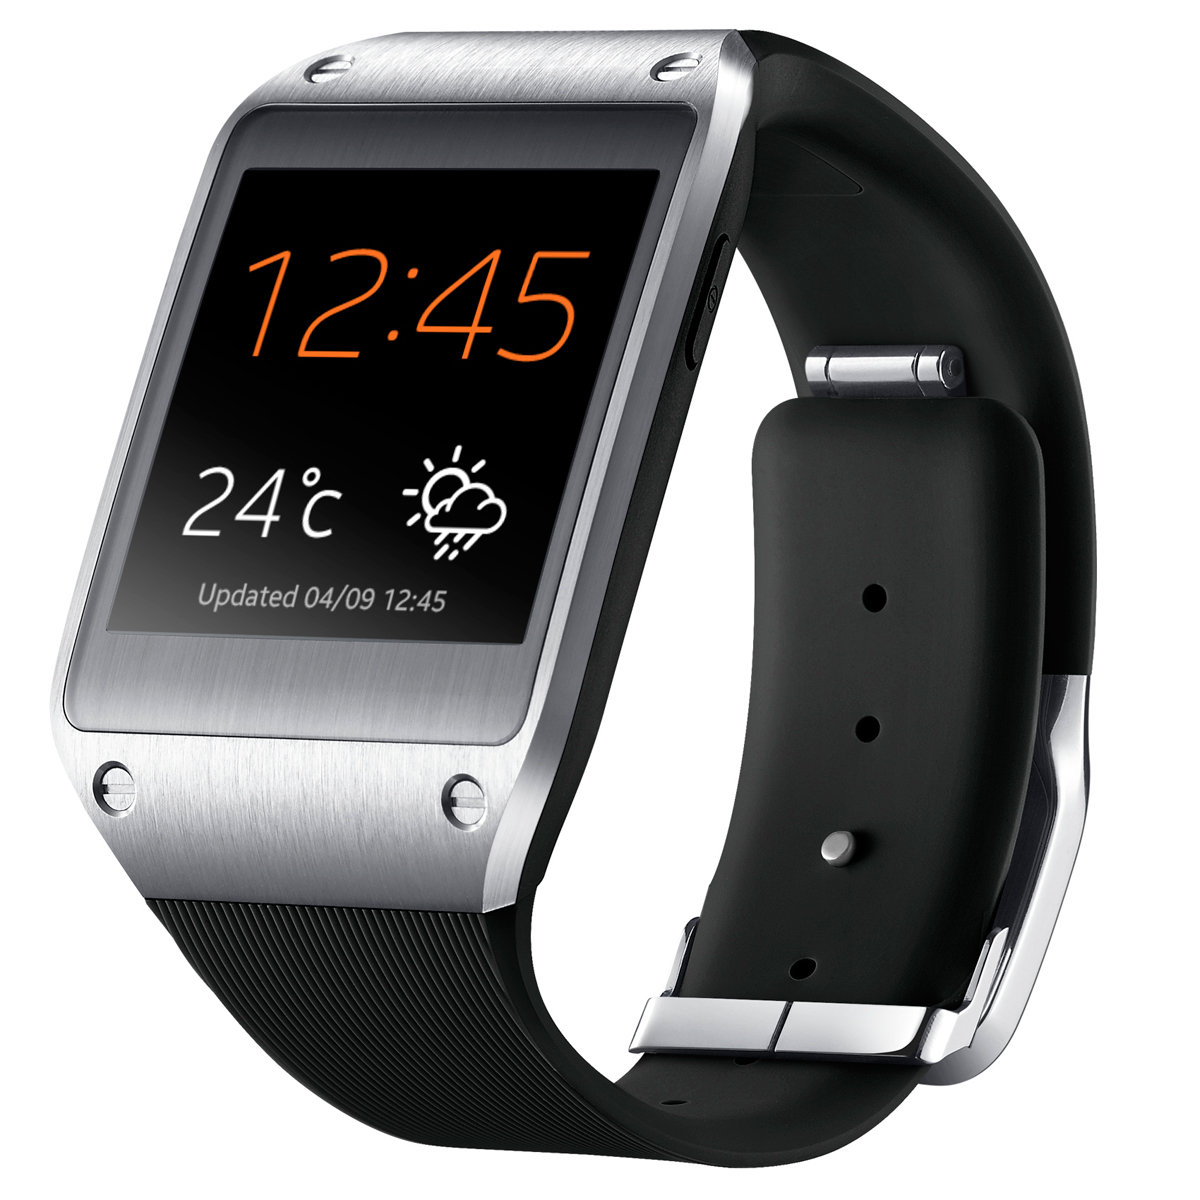 samsung galaxy gear smart freedom noir montre bracelets connect s samsung sur ldlc. Black Bedroom Furniture Sets. Home Design Ideas